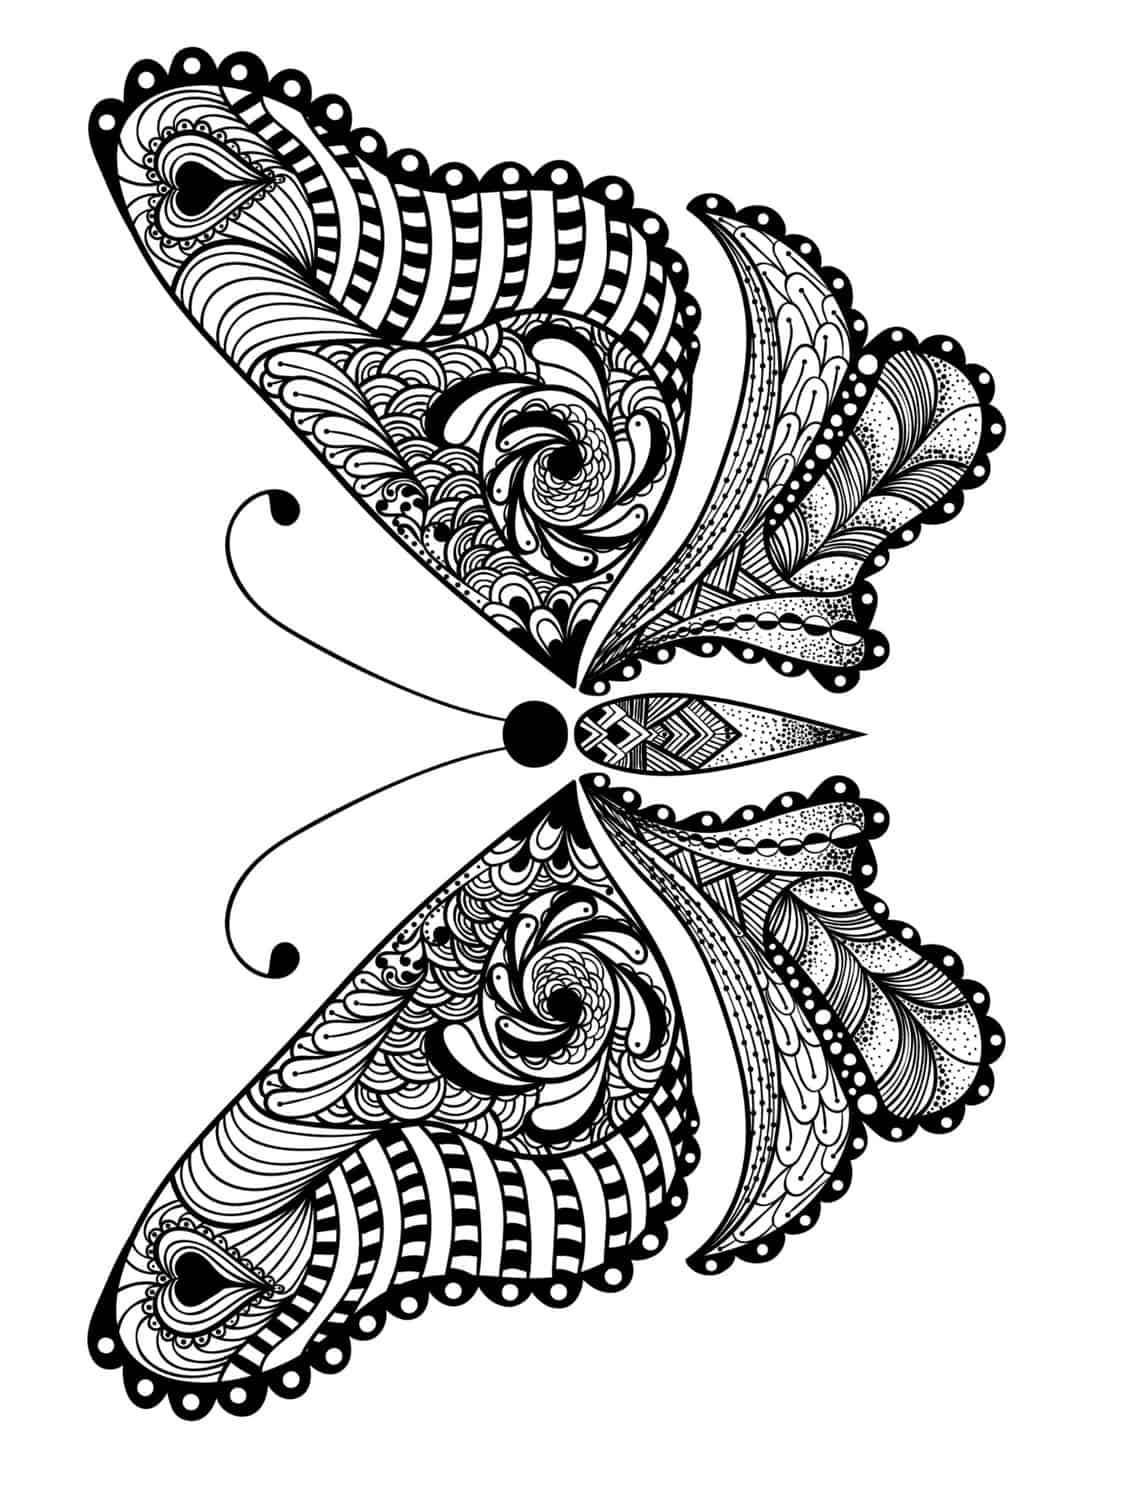 23 Free Printable Insect Animal Adult Coloring Pages Page 24